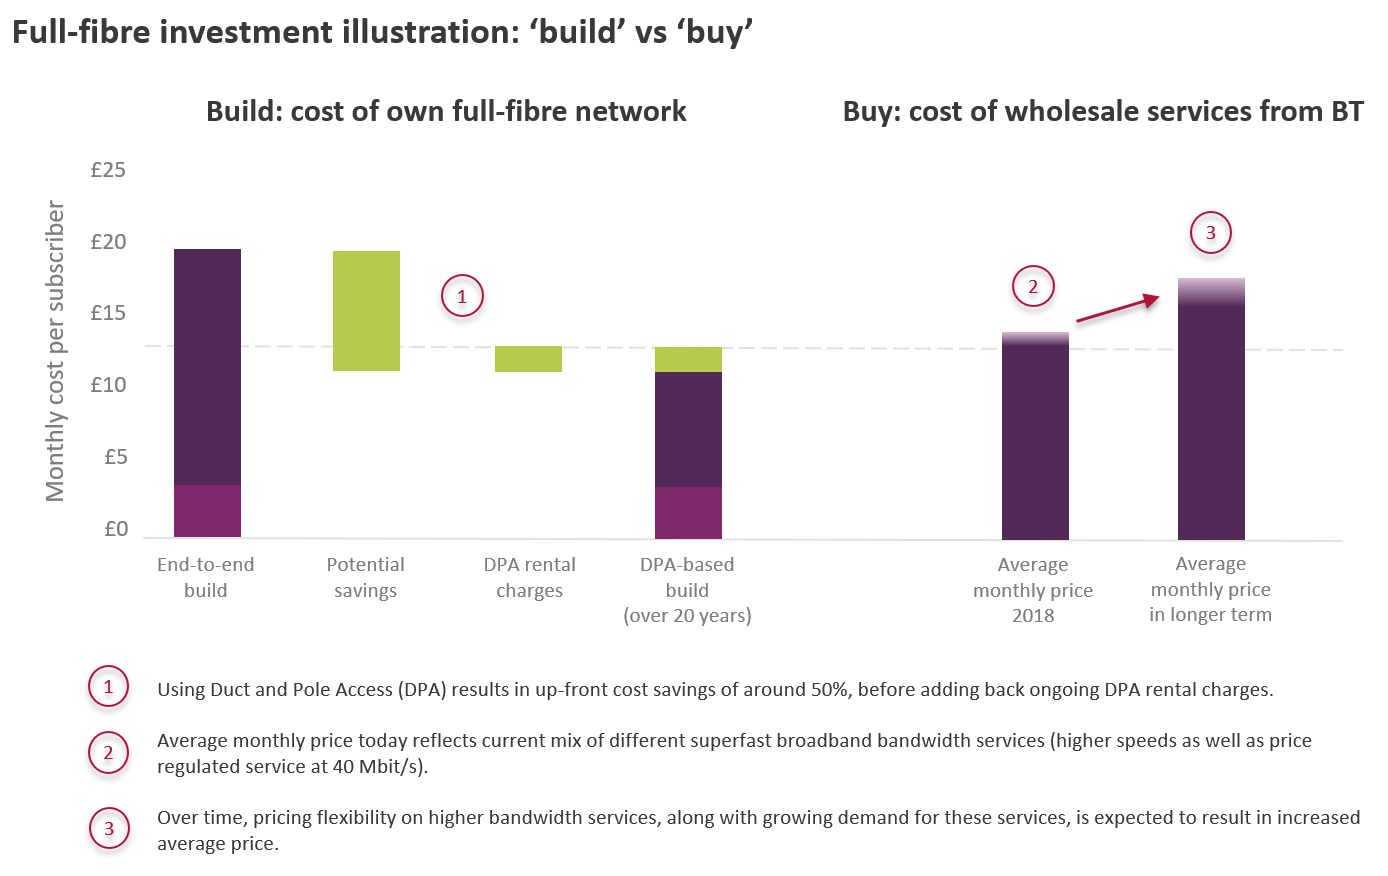 "Chart showing cost of full-fibre investment, comparing the ""build"" cost of own full-fibre network versus the ""buy"" cost of wholesale services from BT. Using Duct and Pole Access (DPA) results in up-front cost savings of around 50%, before adding back ongoing DPA rental charges. Average monthly price today reflects current mix of different superfast broadband bandwidth services (higher speeds as well as price regulated service at 40 Mbit/s). Over time, pricing flexibility on higher bandwidth services, along with growing demand for these services, is expected to result in increased average price."